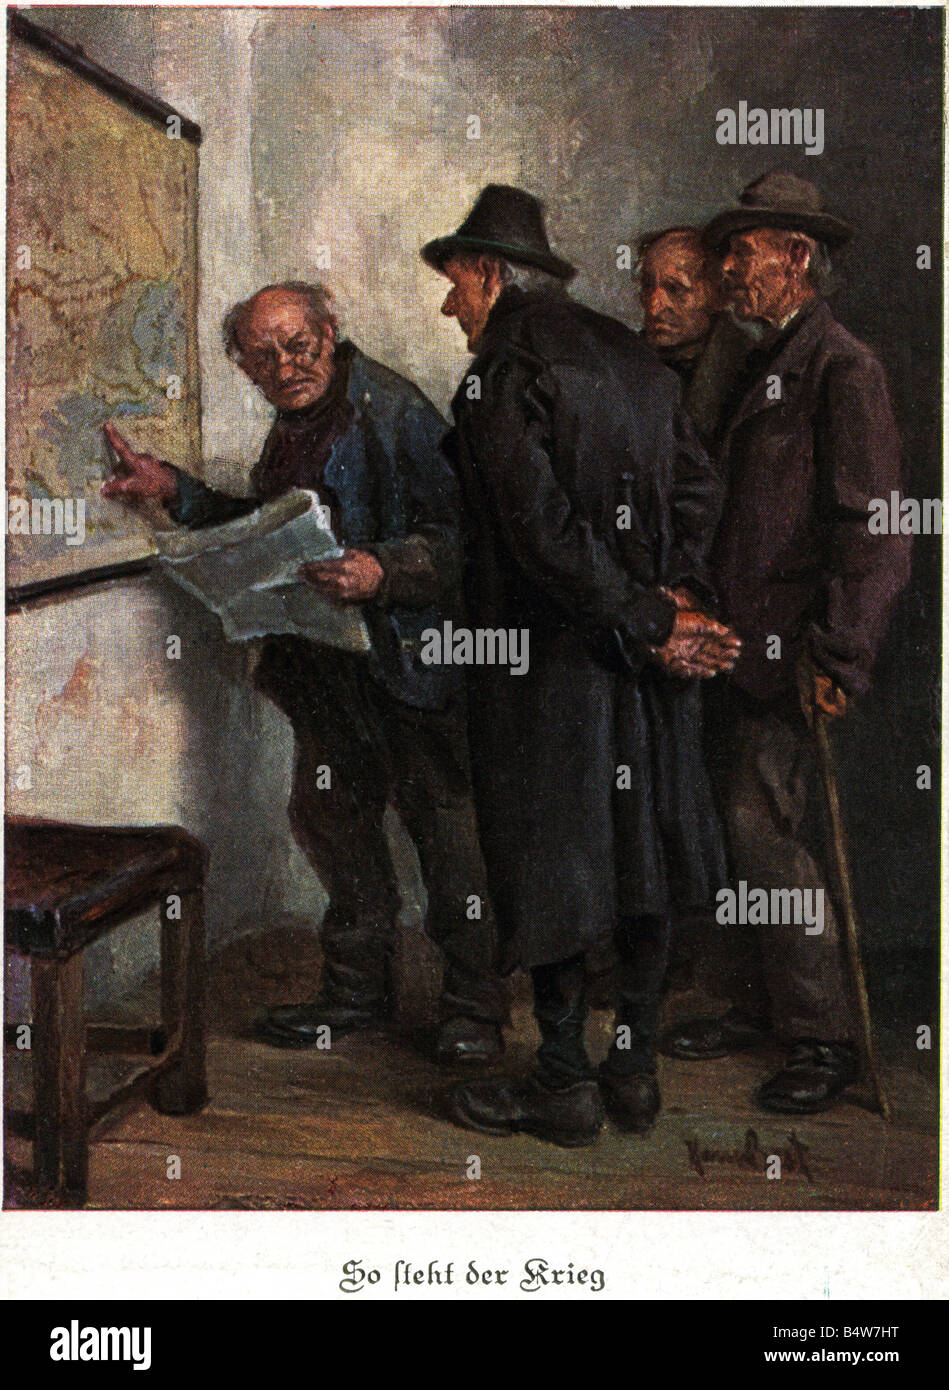 events, First World War / WWI, military postcards, postcard 'So steht der Krieg' (That is the course of - Stock Image